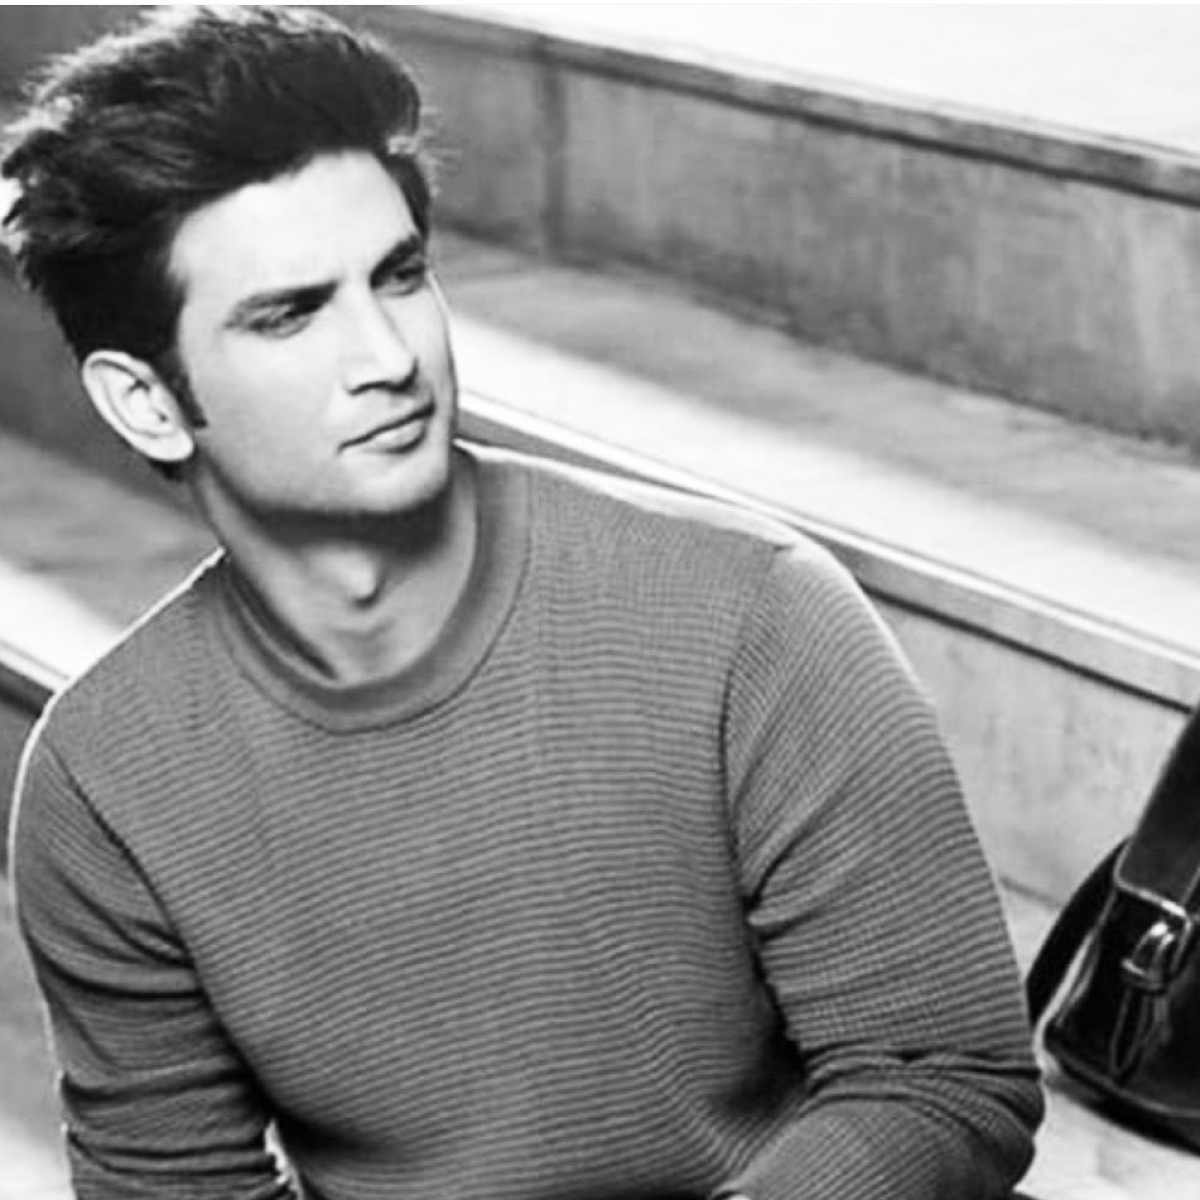 Sushant Singh Rajput searched for 'painless death' on internet, reveals Mumbai CP